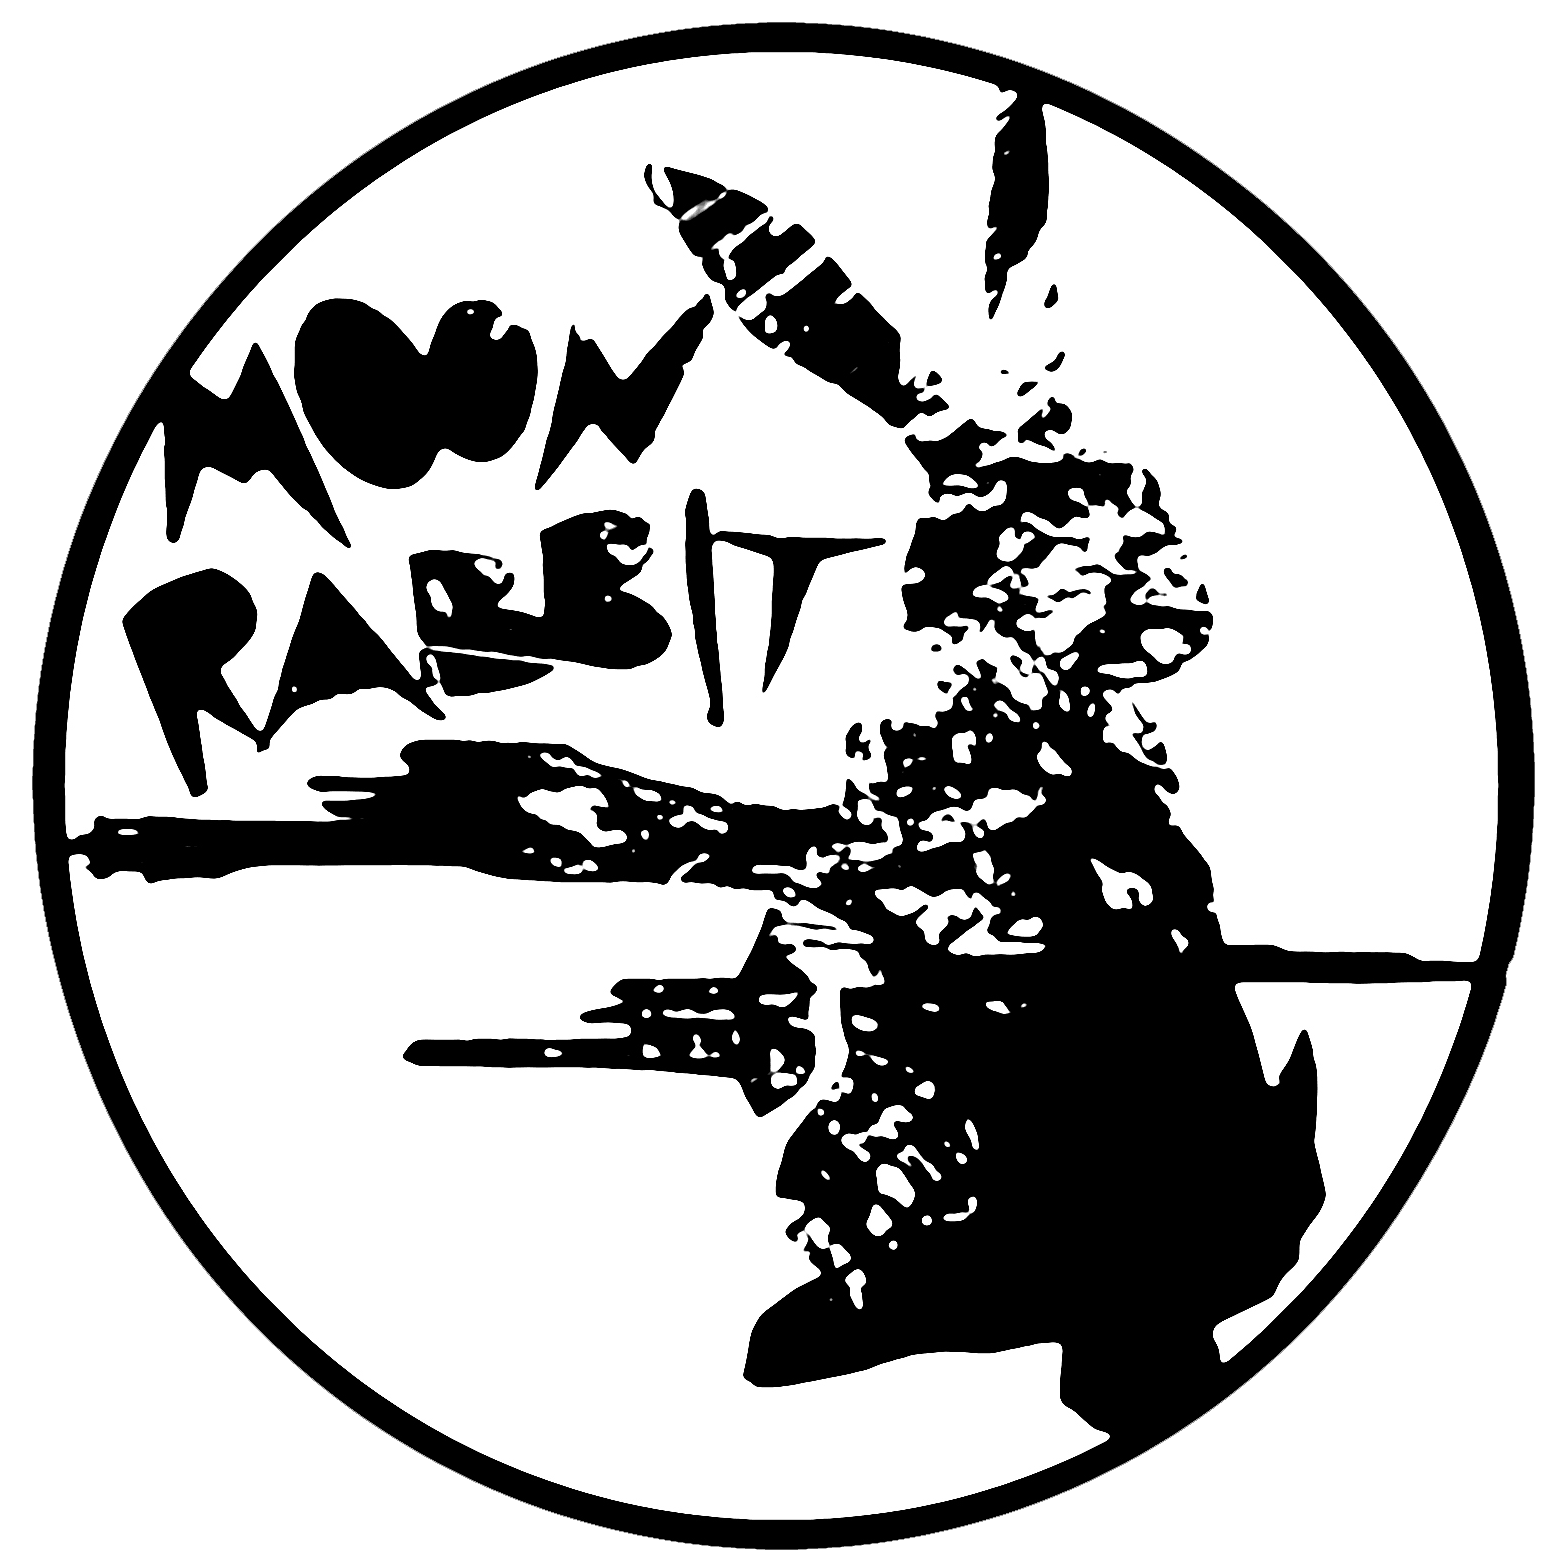 Moon Rabbit Studio